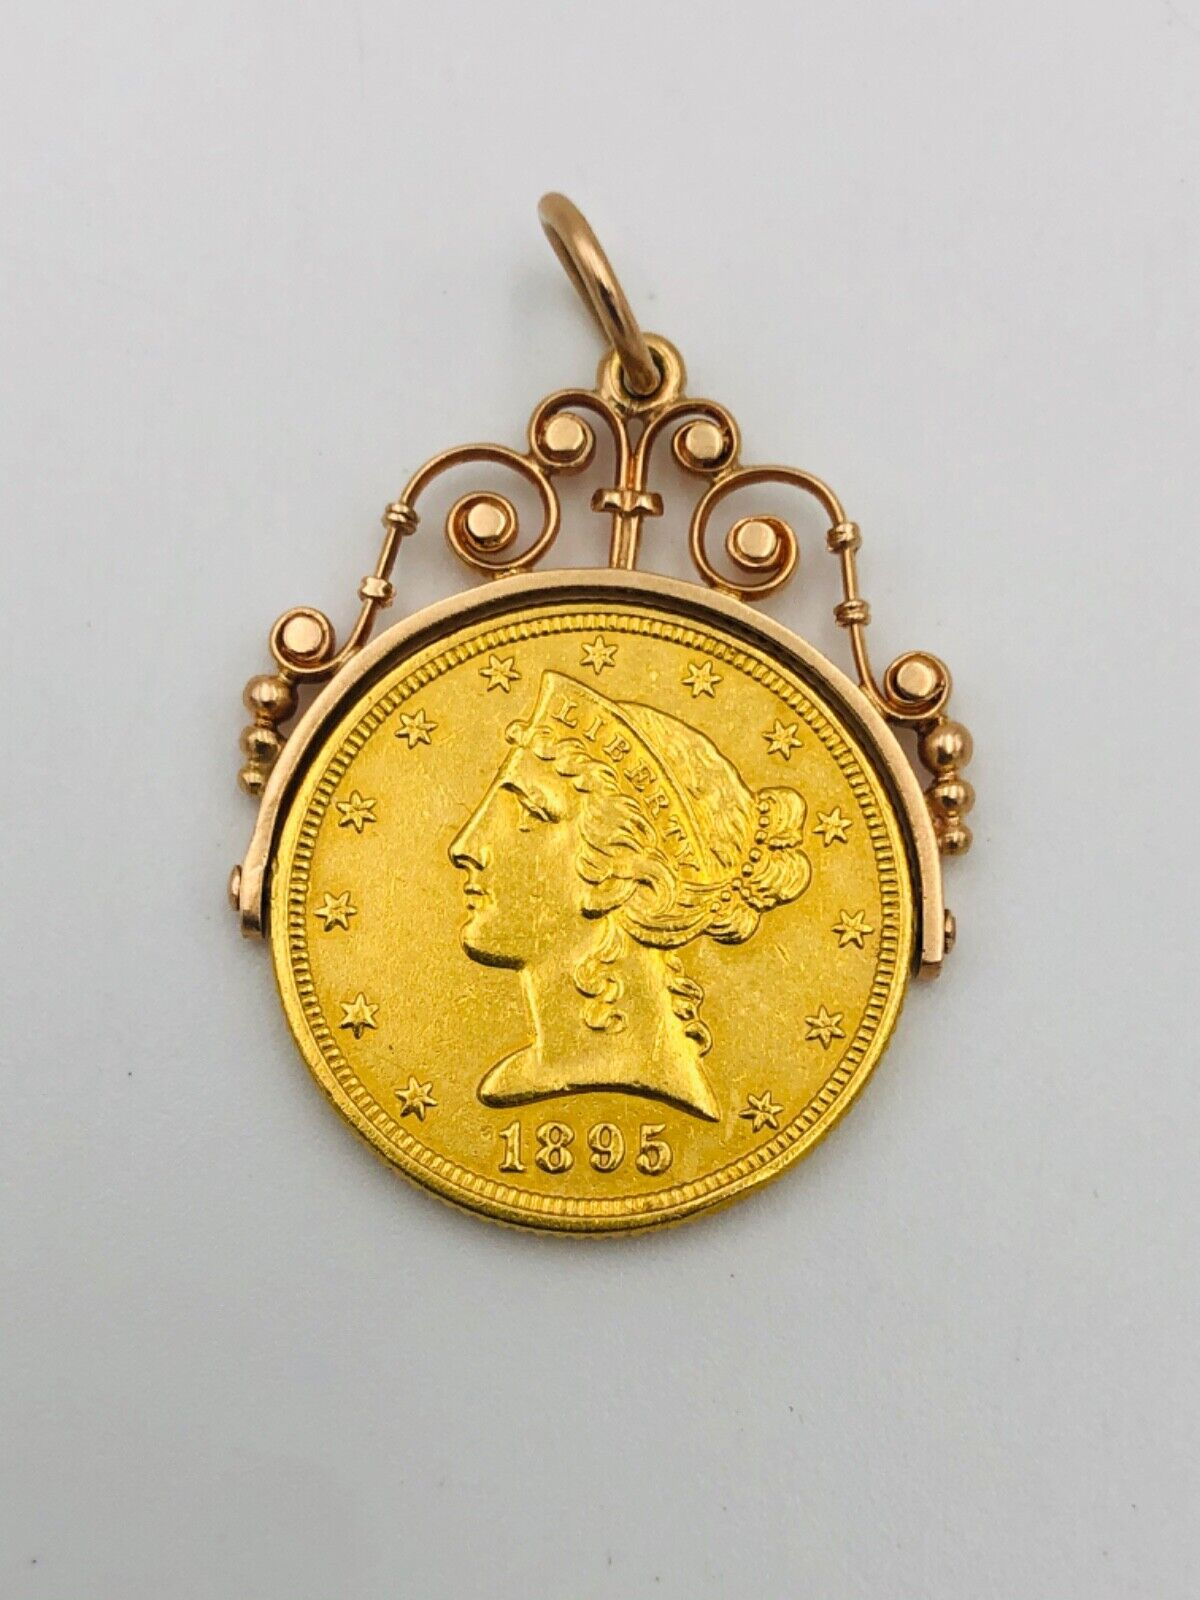 22k Victorian 1895 5 Five Dollar Gold Pendant Swivels Shows Both Sides Of Coin - $1,200.00